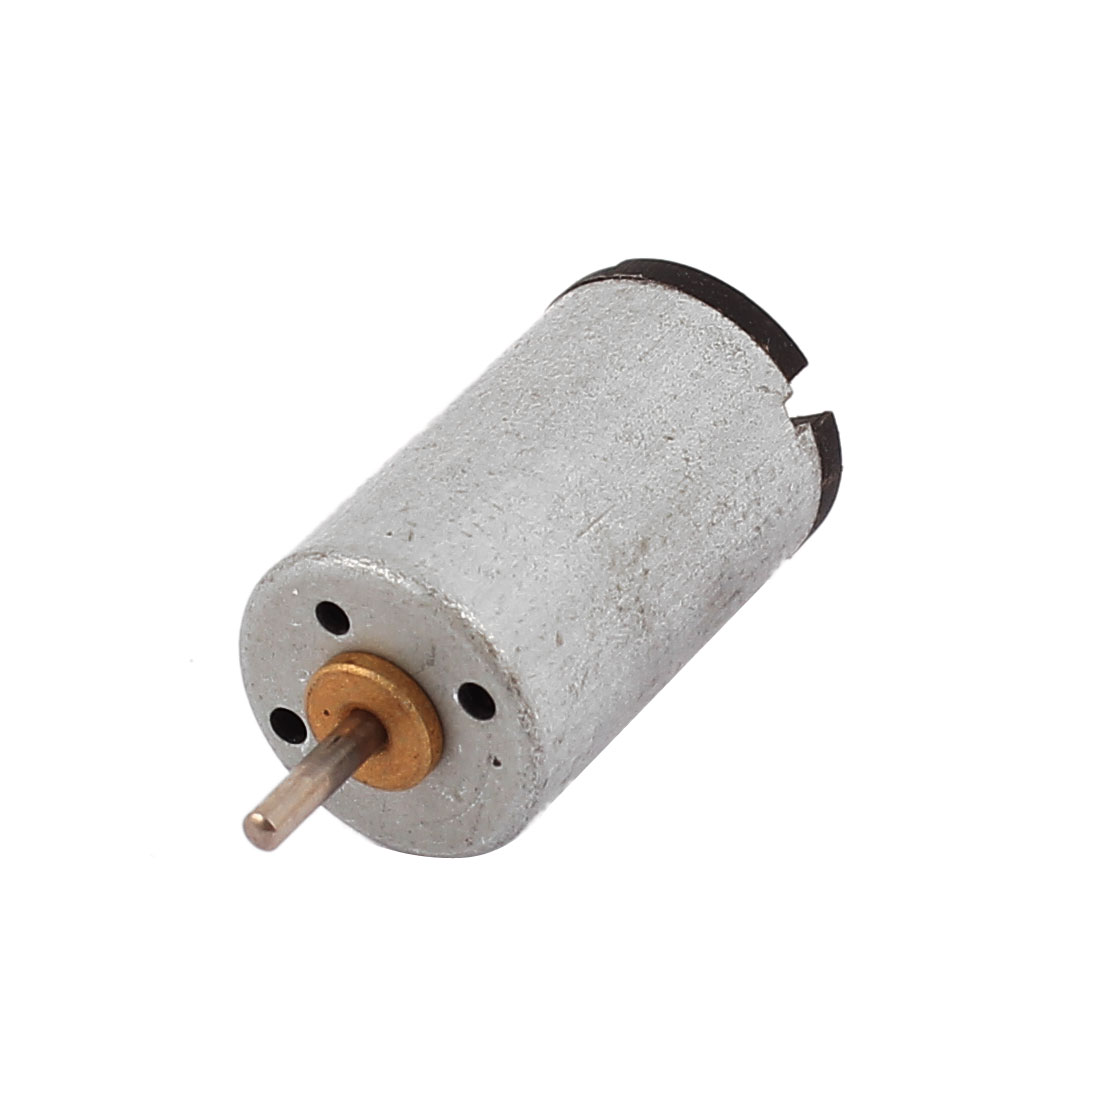 DC 3V-6V 2000RPM High Speed Low Voltage Electric Micro Mini Motor